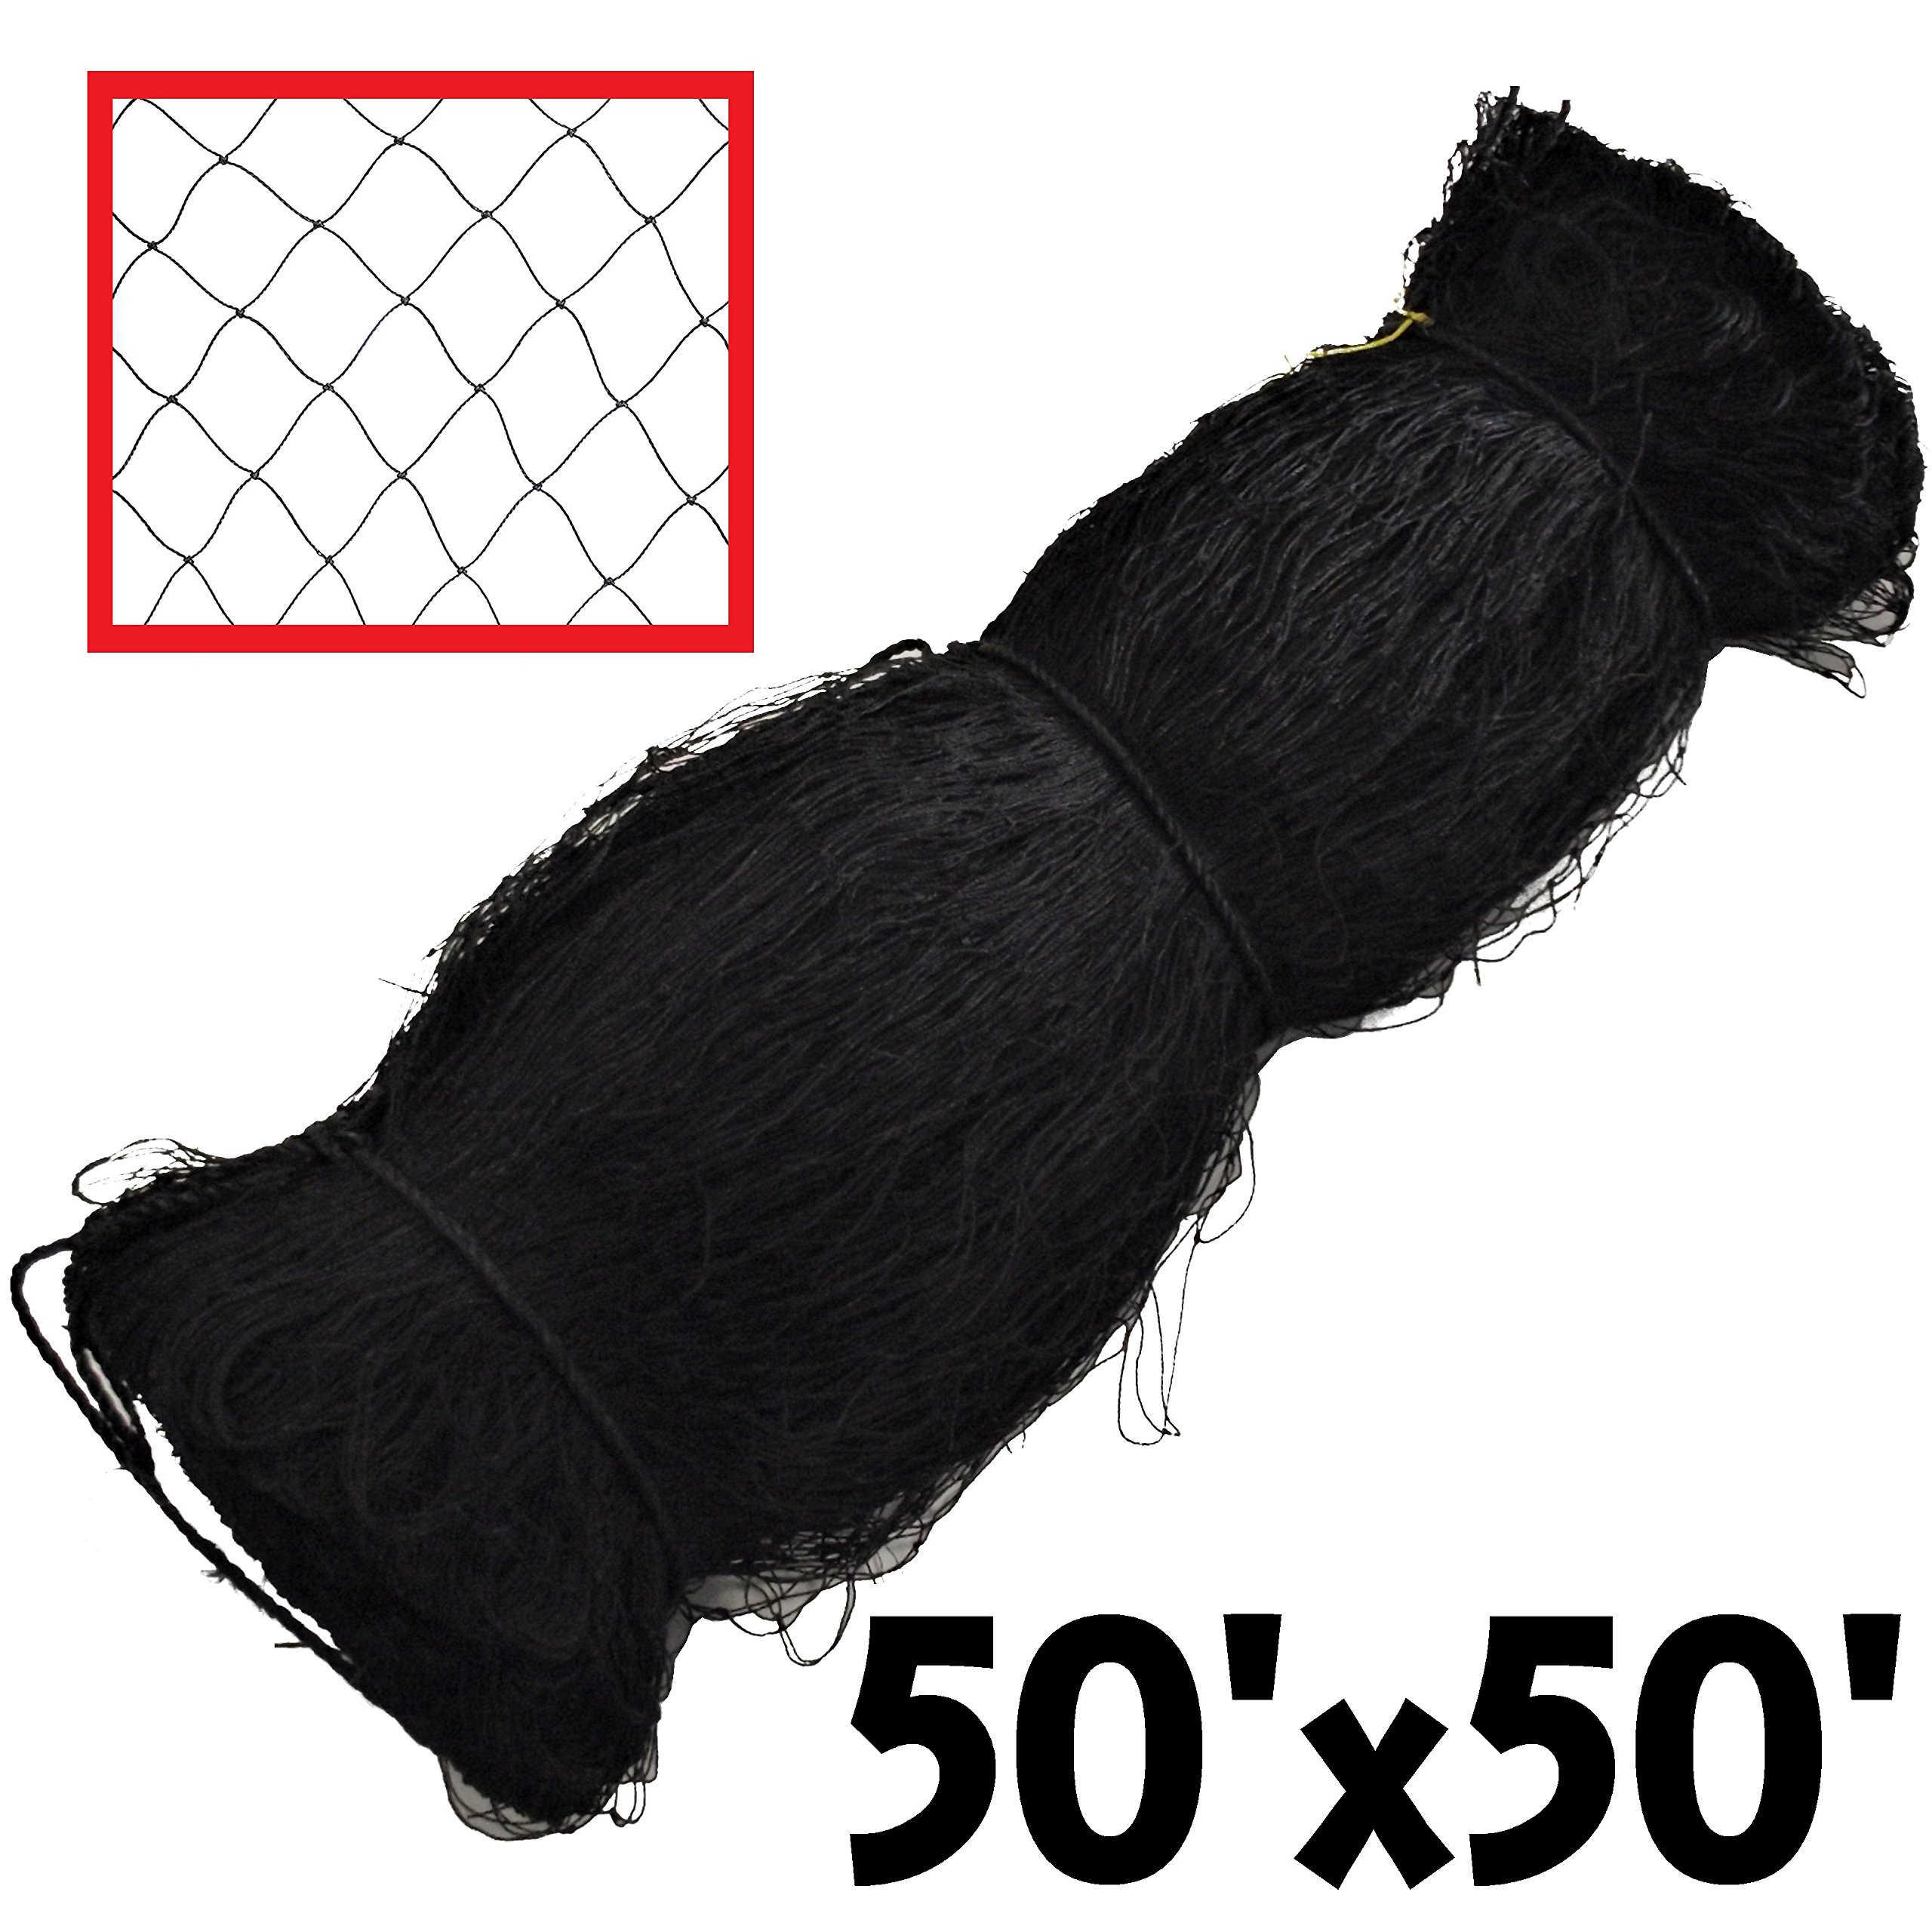 RITE FARM PRODUCTS 50X50 POULTRY BIRD AVIARY NETTING GAME PEN NET GARDEN CHICKEN ANTI